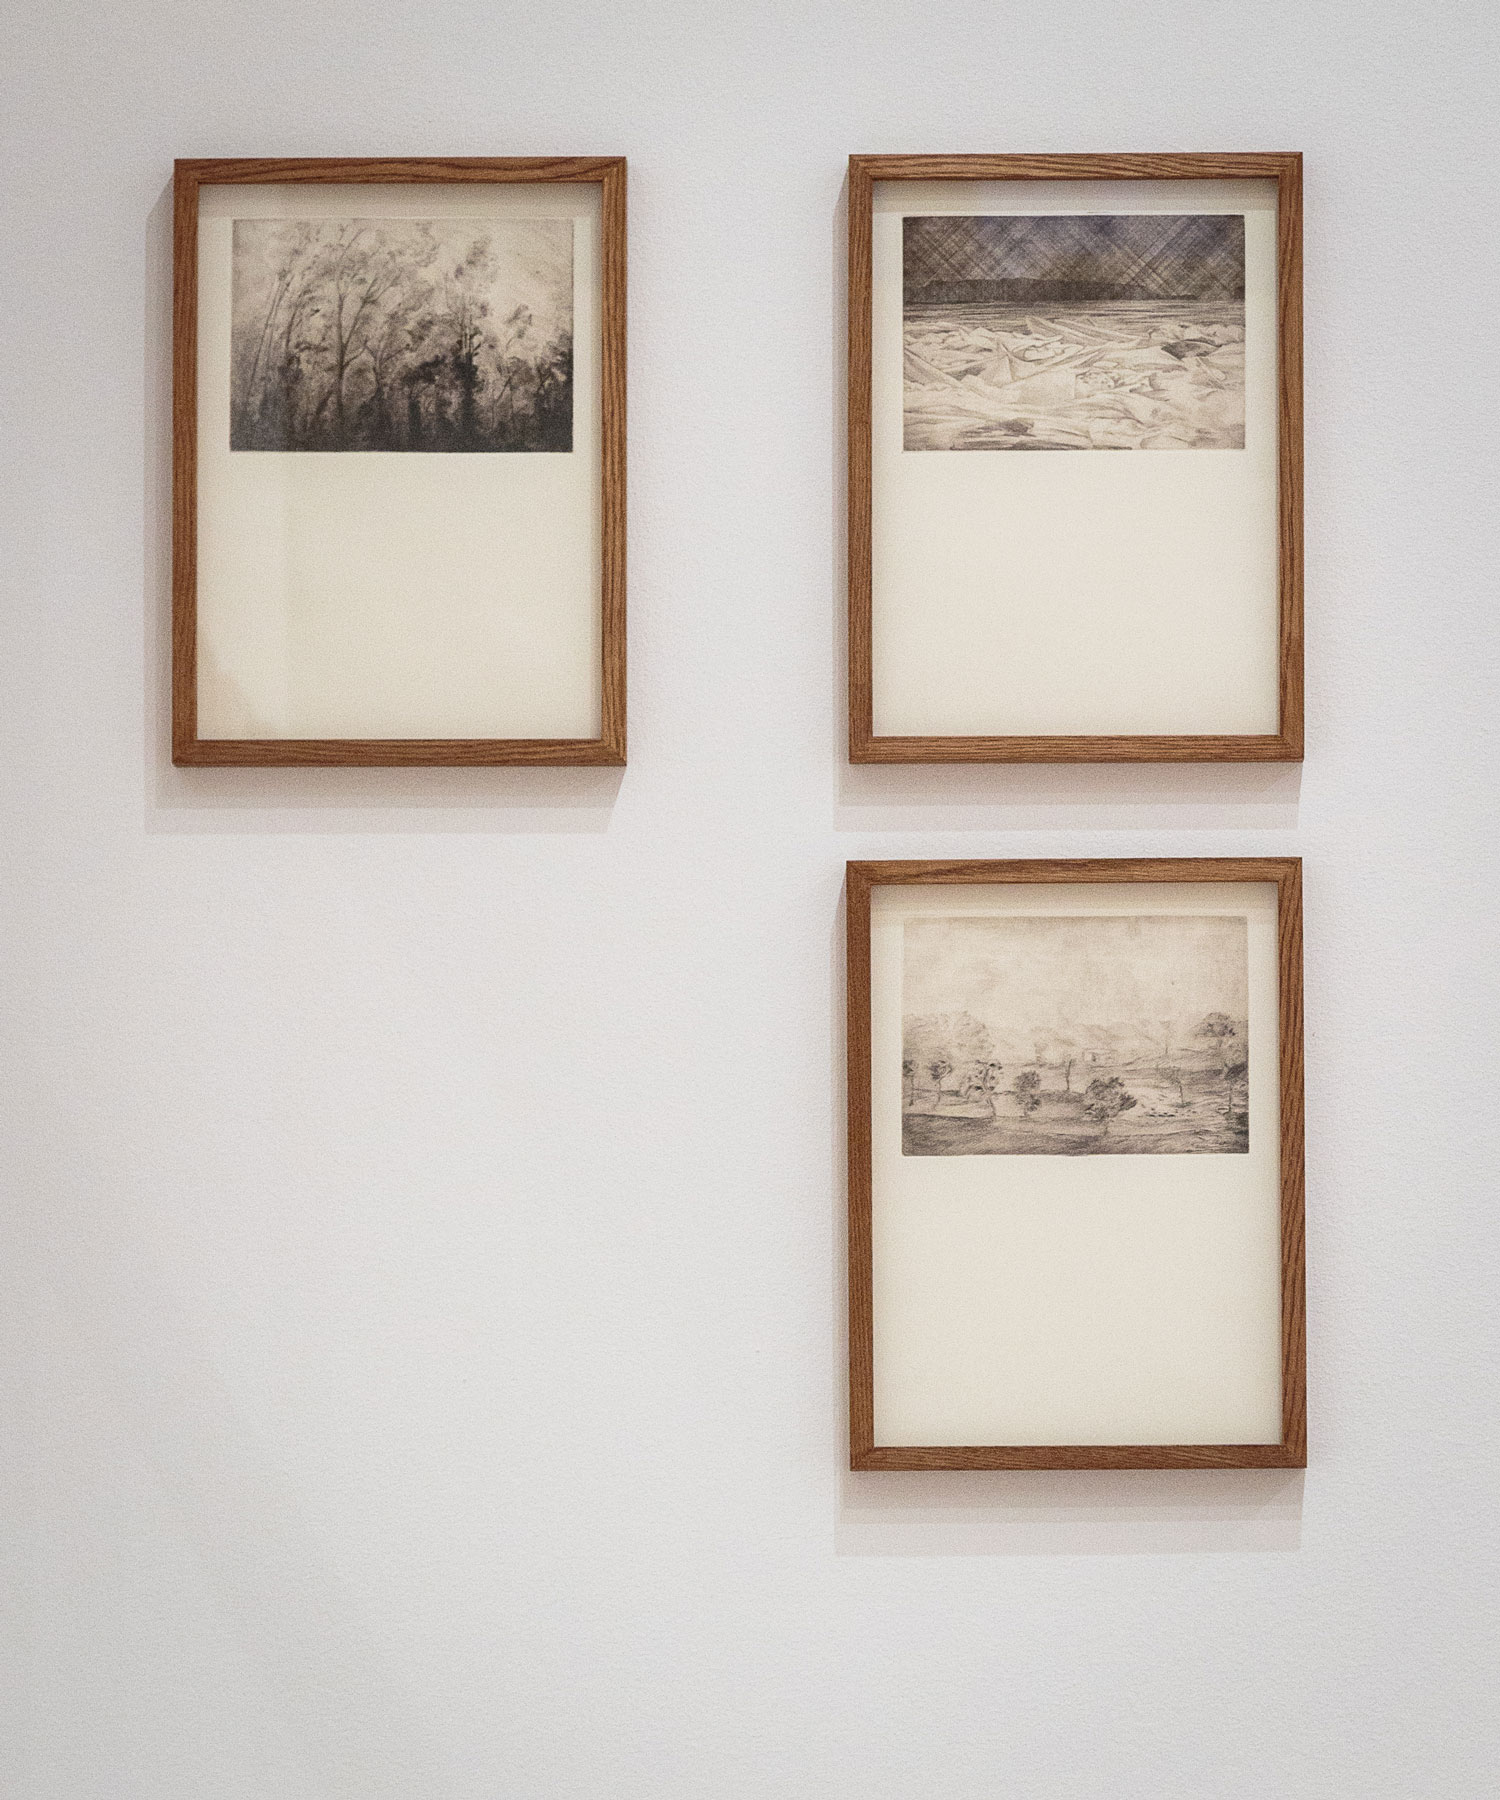 Alessandro Piangiamore | Tutto il vento che c'è (from left to right, starting at the top left: Marine, Košava, Loo), 2010-2013, etchings, cm 31×40 each.